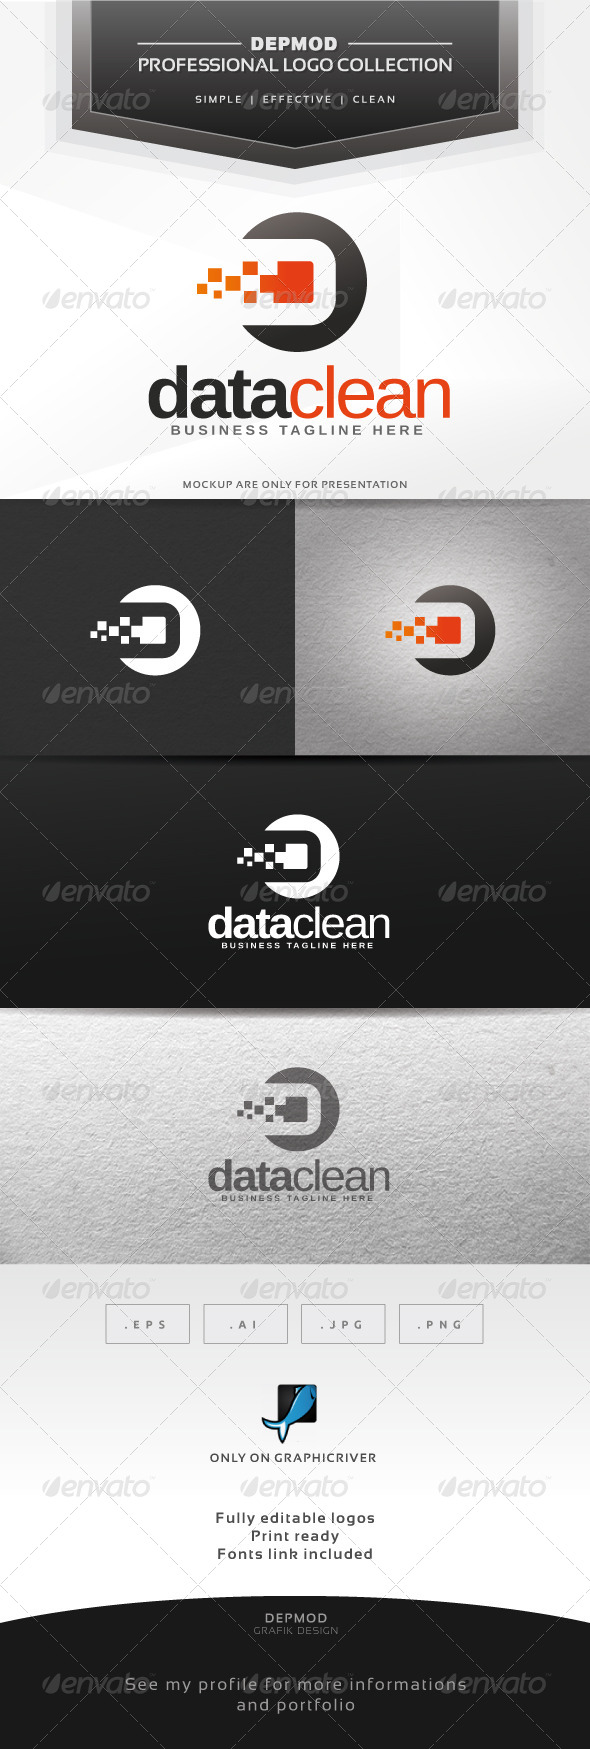 Data Clean Logo - Abstract Logo Templates